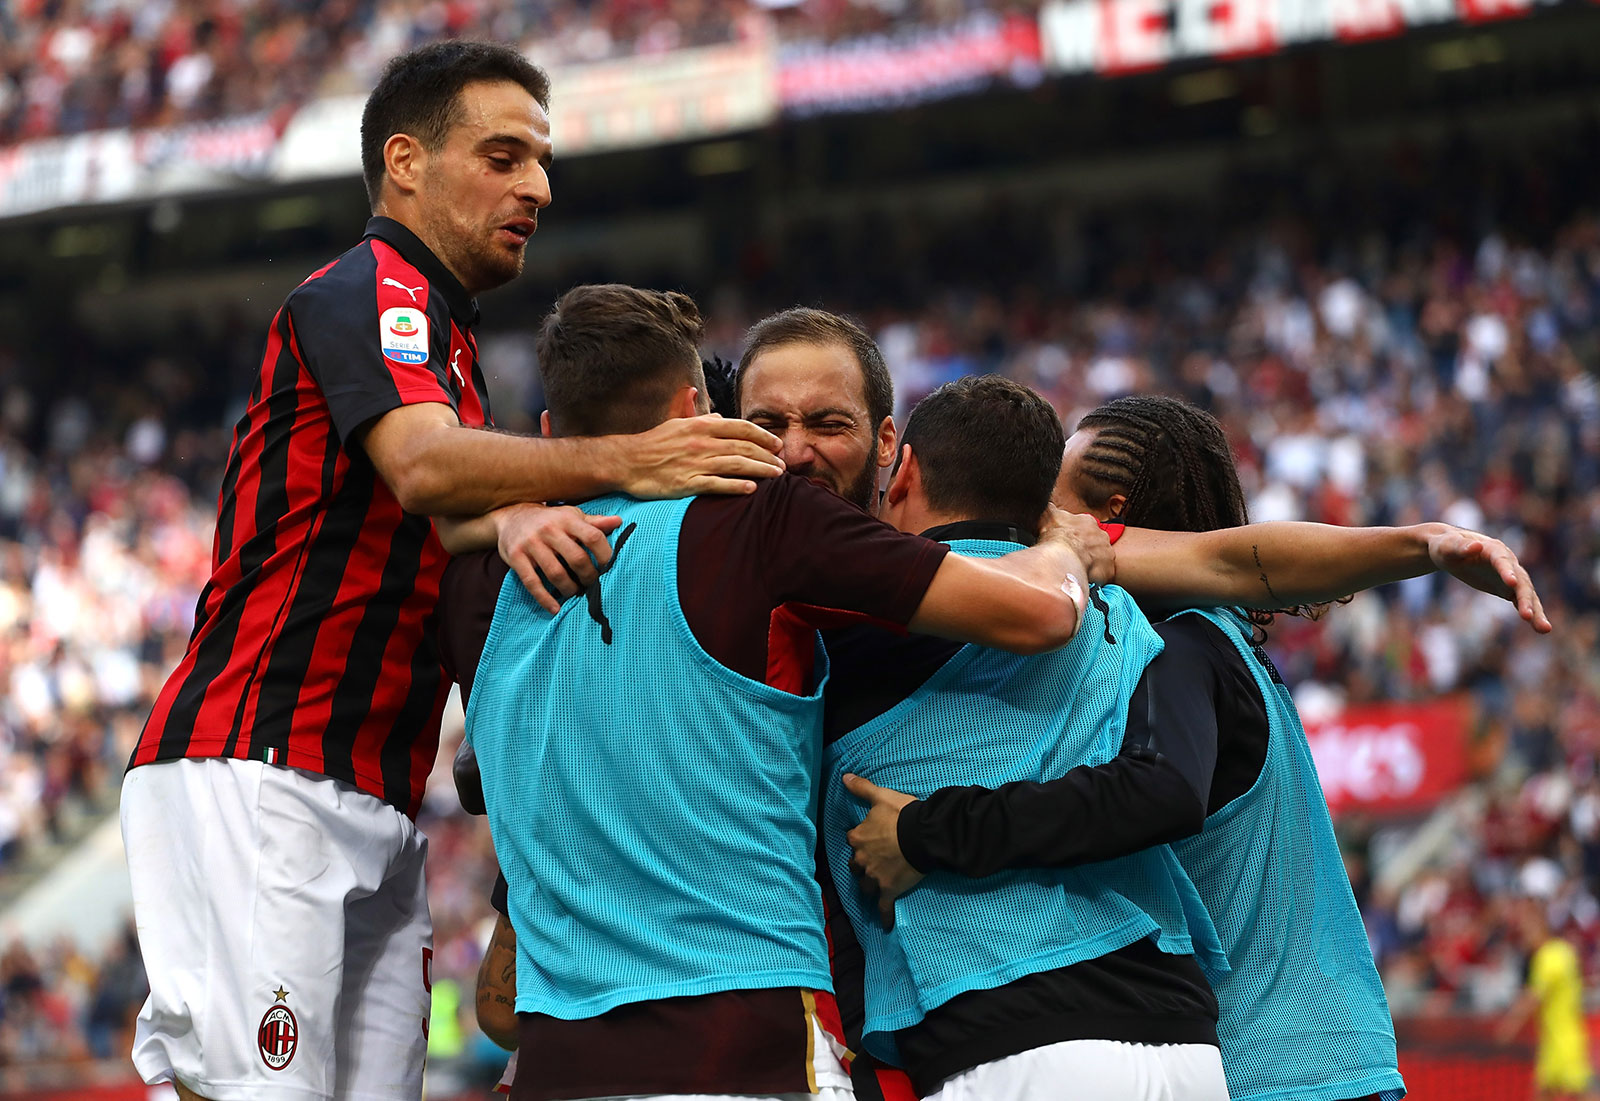 Giacomo Bonaventura, Gonzalo Higuain, Franck Kessié, Diego Laxalt, Davide Calabria and Fabio Borini celebrating during Milan-Chievo at Stadio San Siro on October 7, 2018. (Photo by Marco Luzzani/Getty Images)